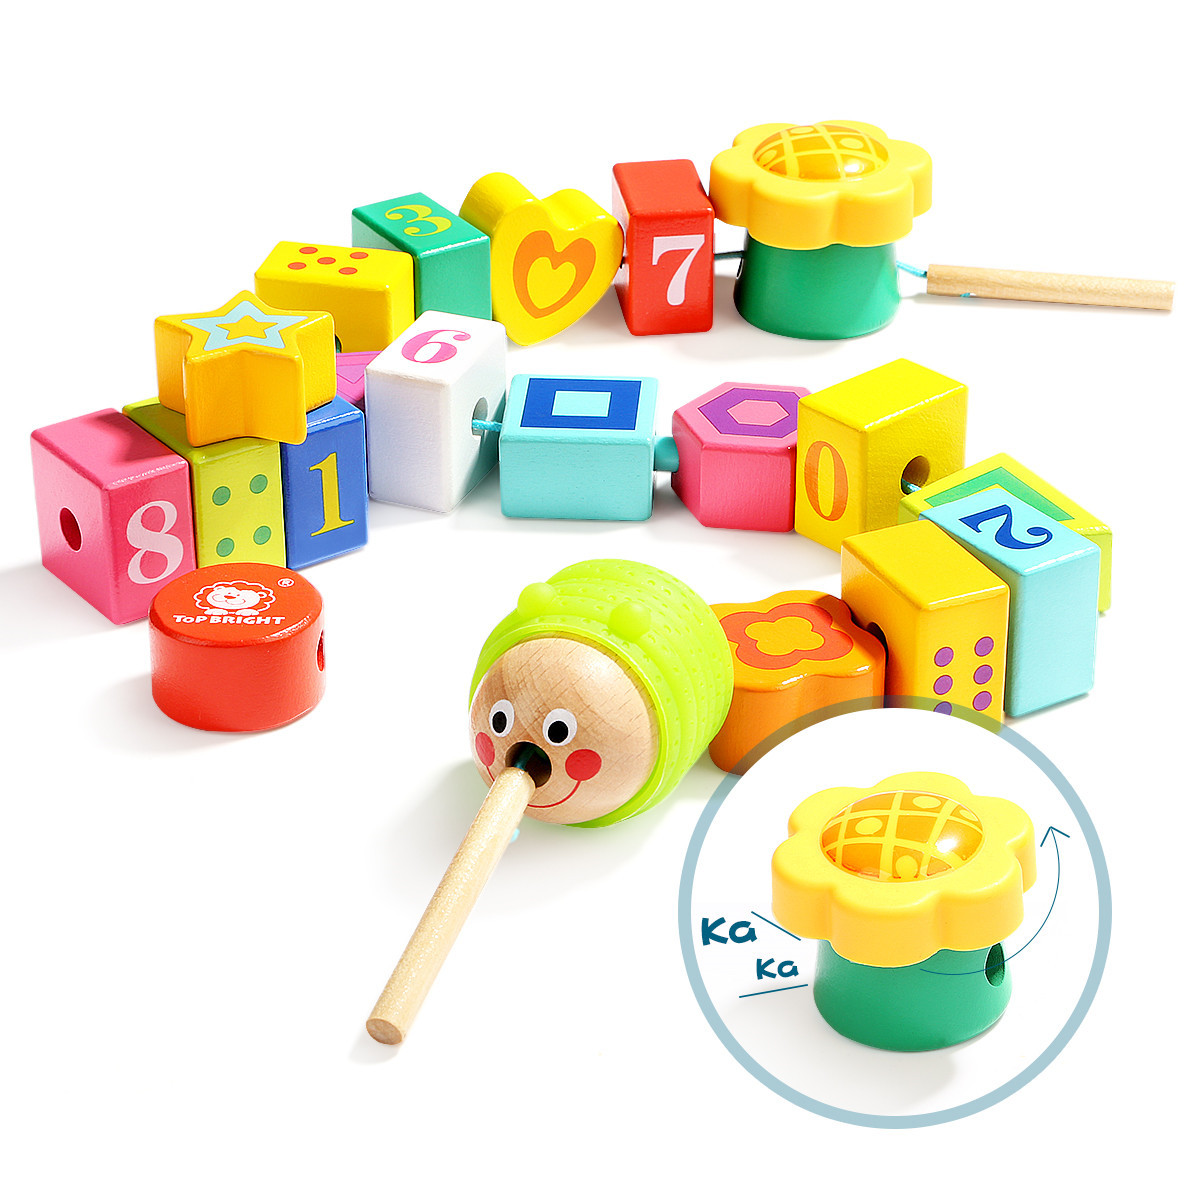 One Year Old Baby Educational GIRL'S And BOY'S CHILDREN'S Building Blocks Threading 3 Children Bead Toy 1-2 A Year Of Age Beads